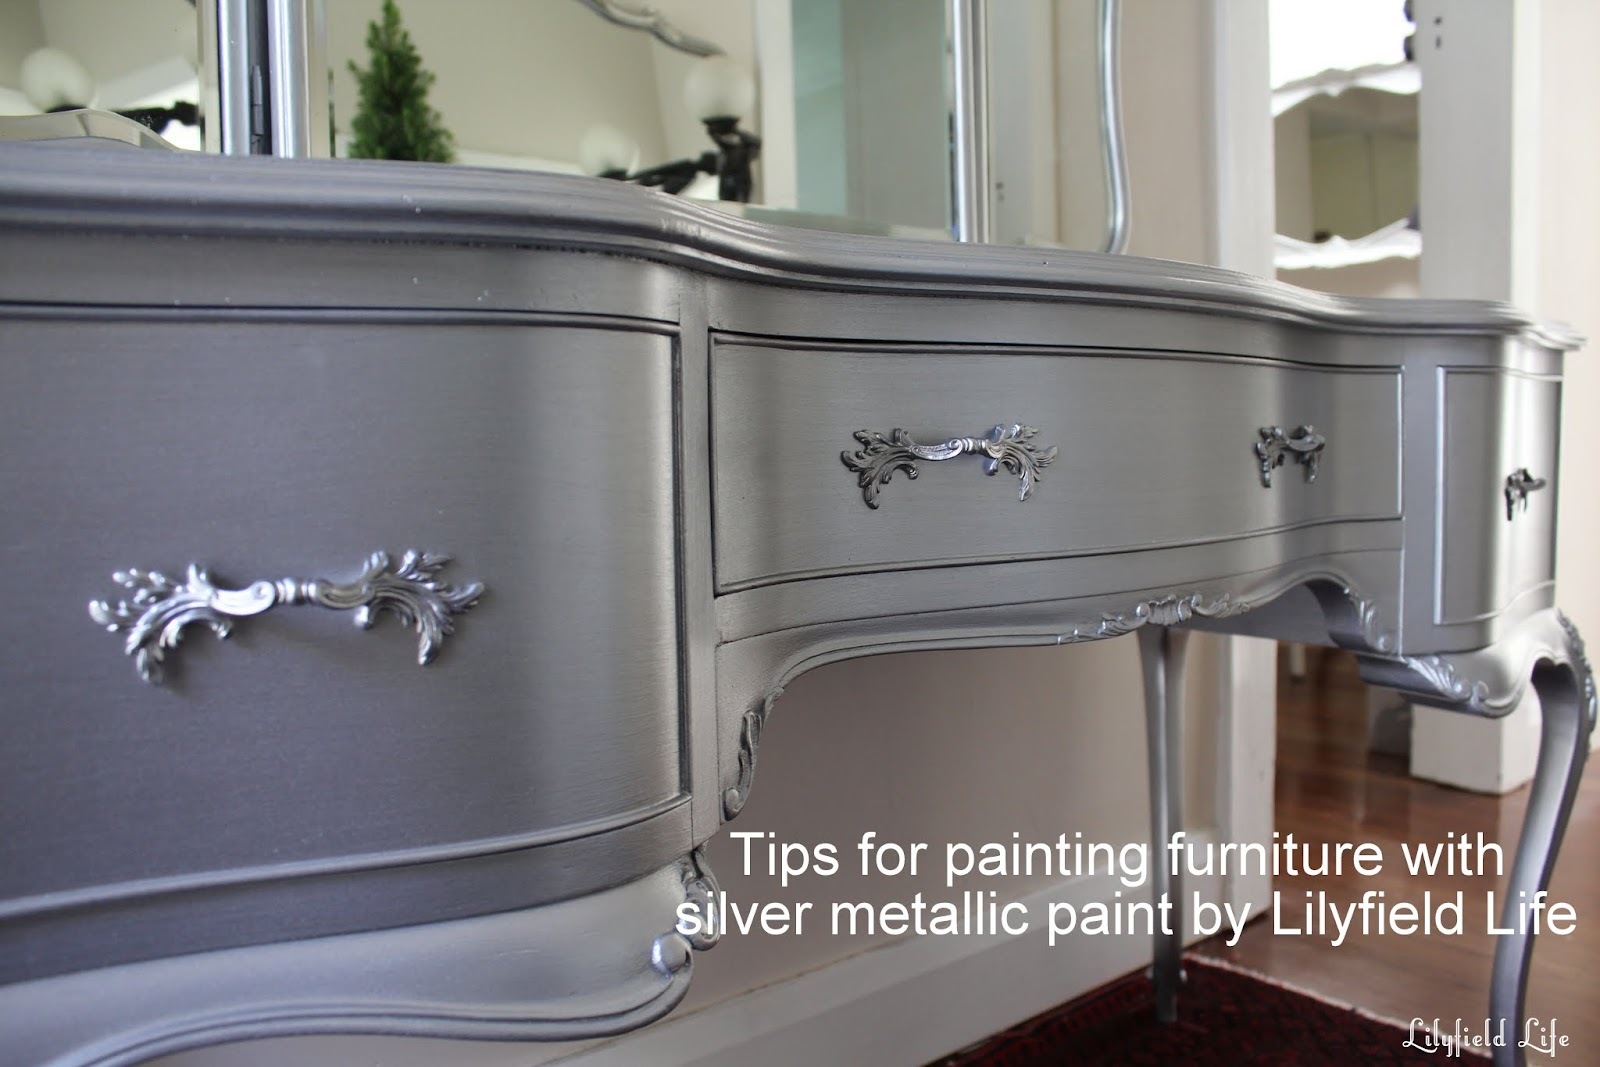 Paint For Bedroom Furniture Lilyfield Life Tips On Using Metallic Paint And A Silver Painted